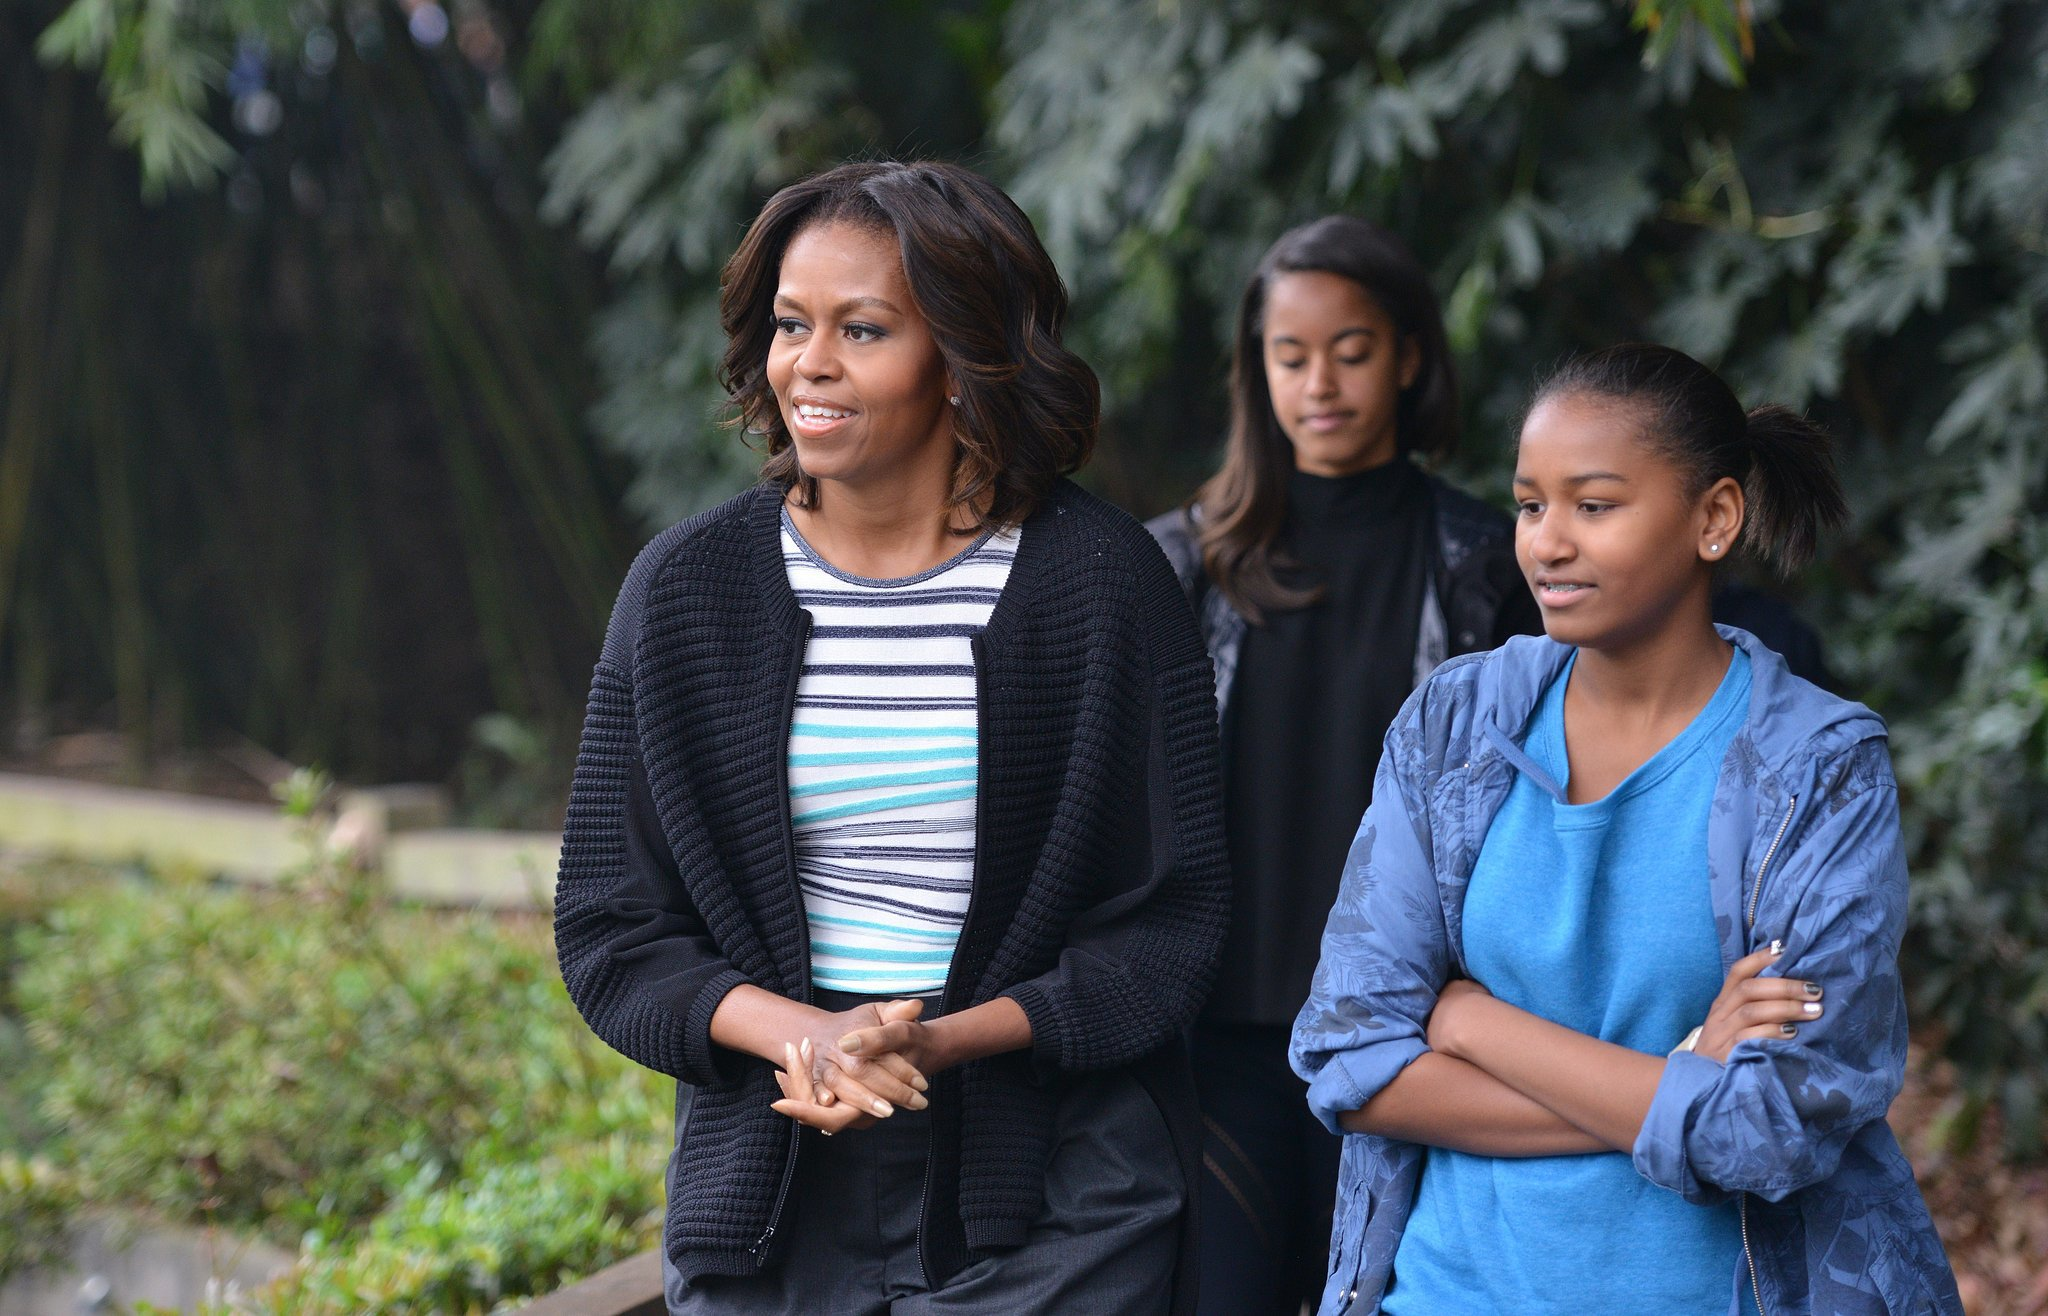 The Obama girls visited the Giant Panda Research Base in Chengdu.